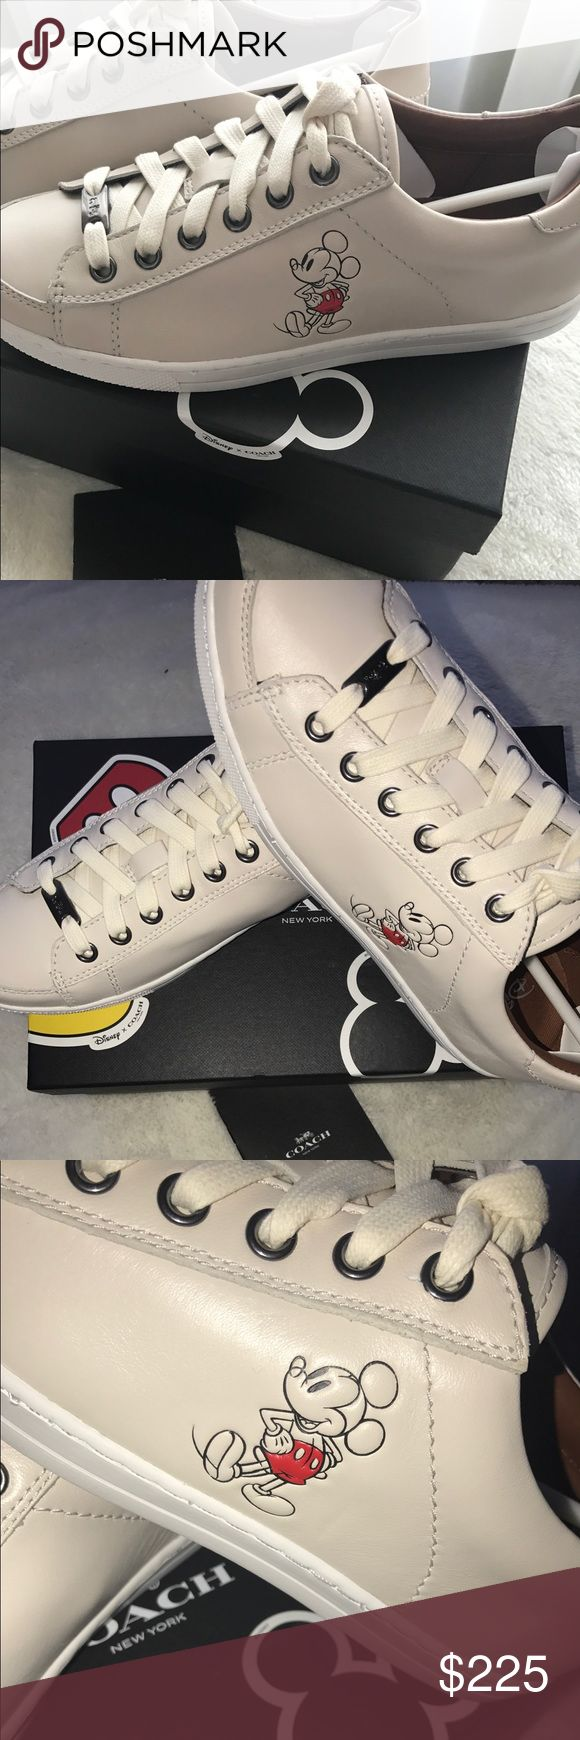 Authentic Disney Coach Porter Sneakers Price Firm unless bundled Limited Edition Coach Disney Leather Sneaker : Color Chalk Coach Shoes Sneakers